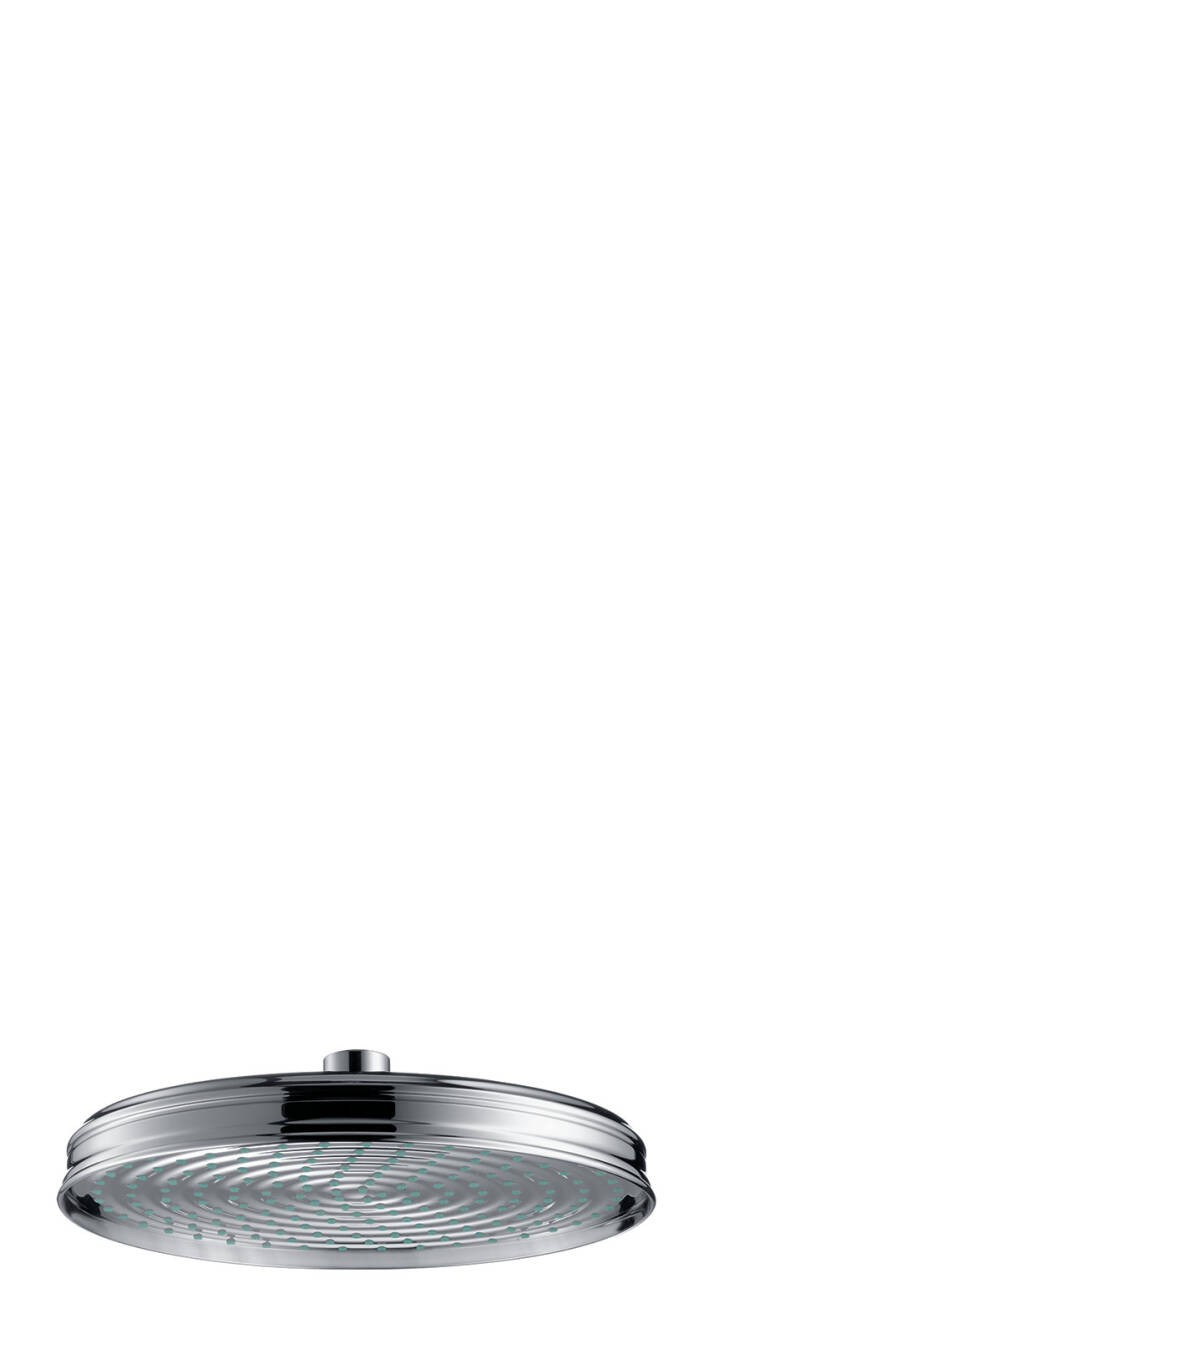 Overhead shower 240 1jet Classic, Brushed Chrome, 28474260